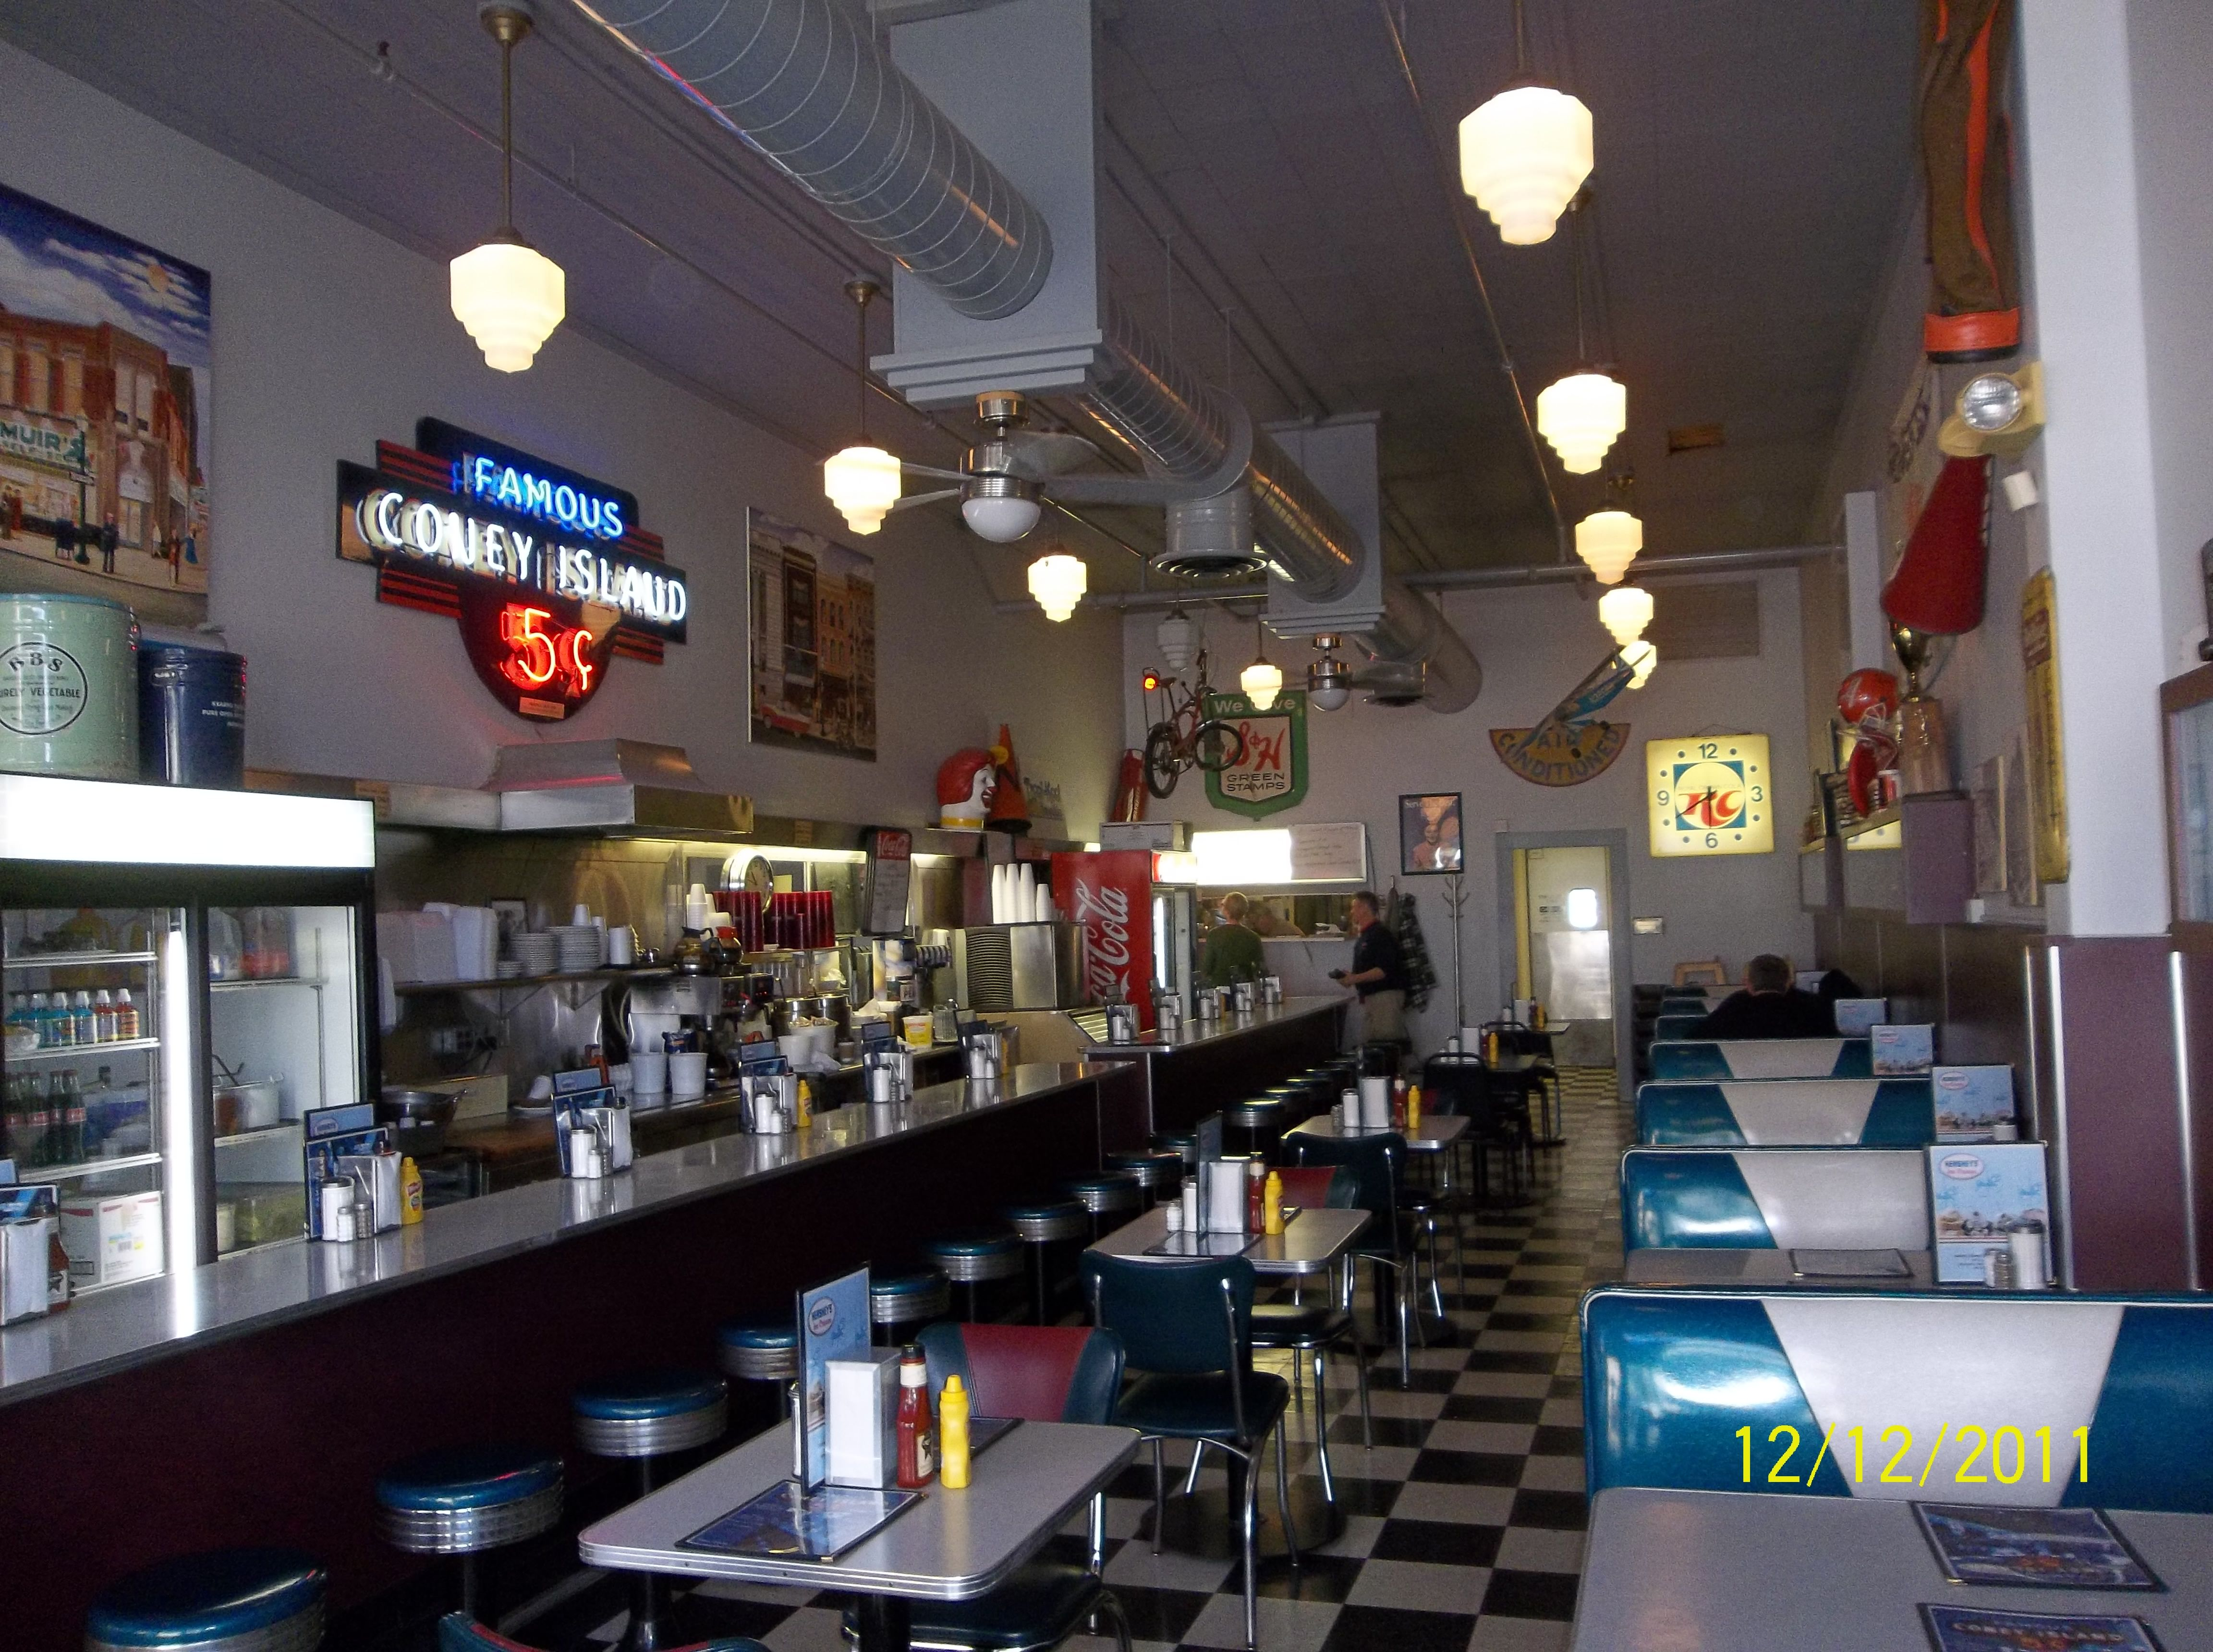 Interior Of The Coney Island Diner In Downtown Mansfield Ohio